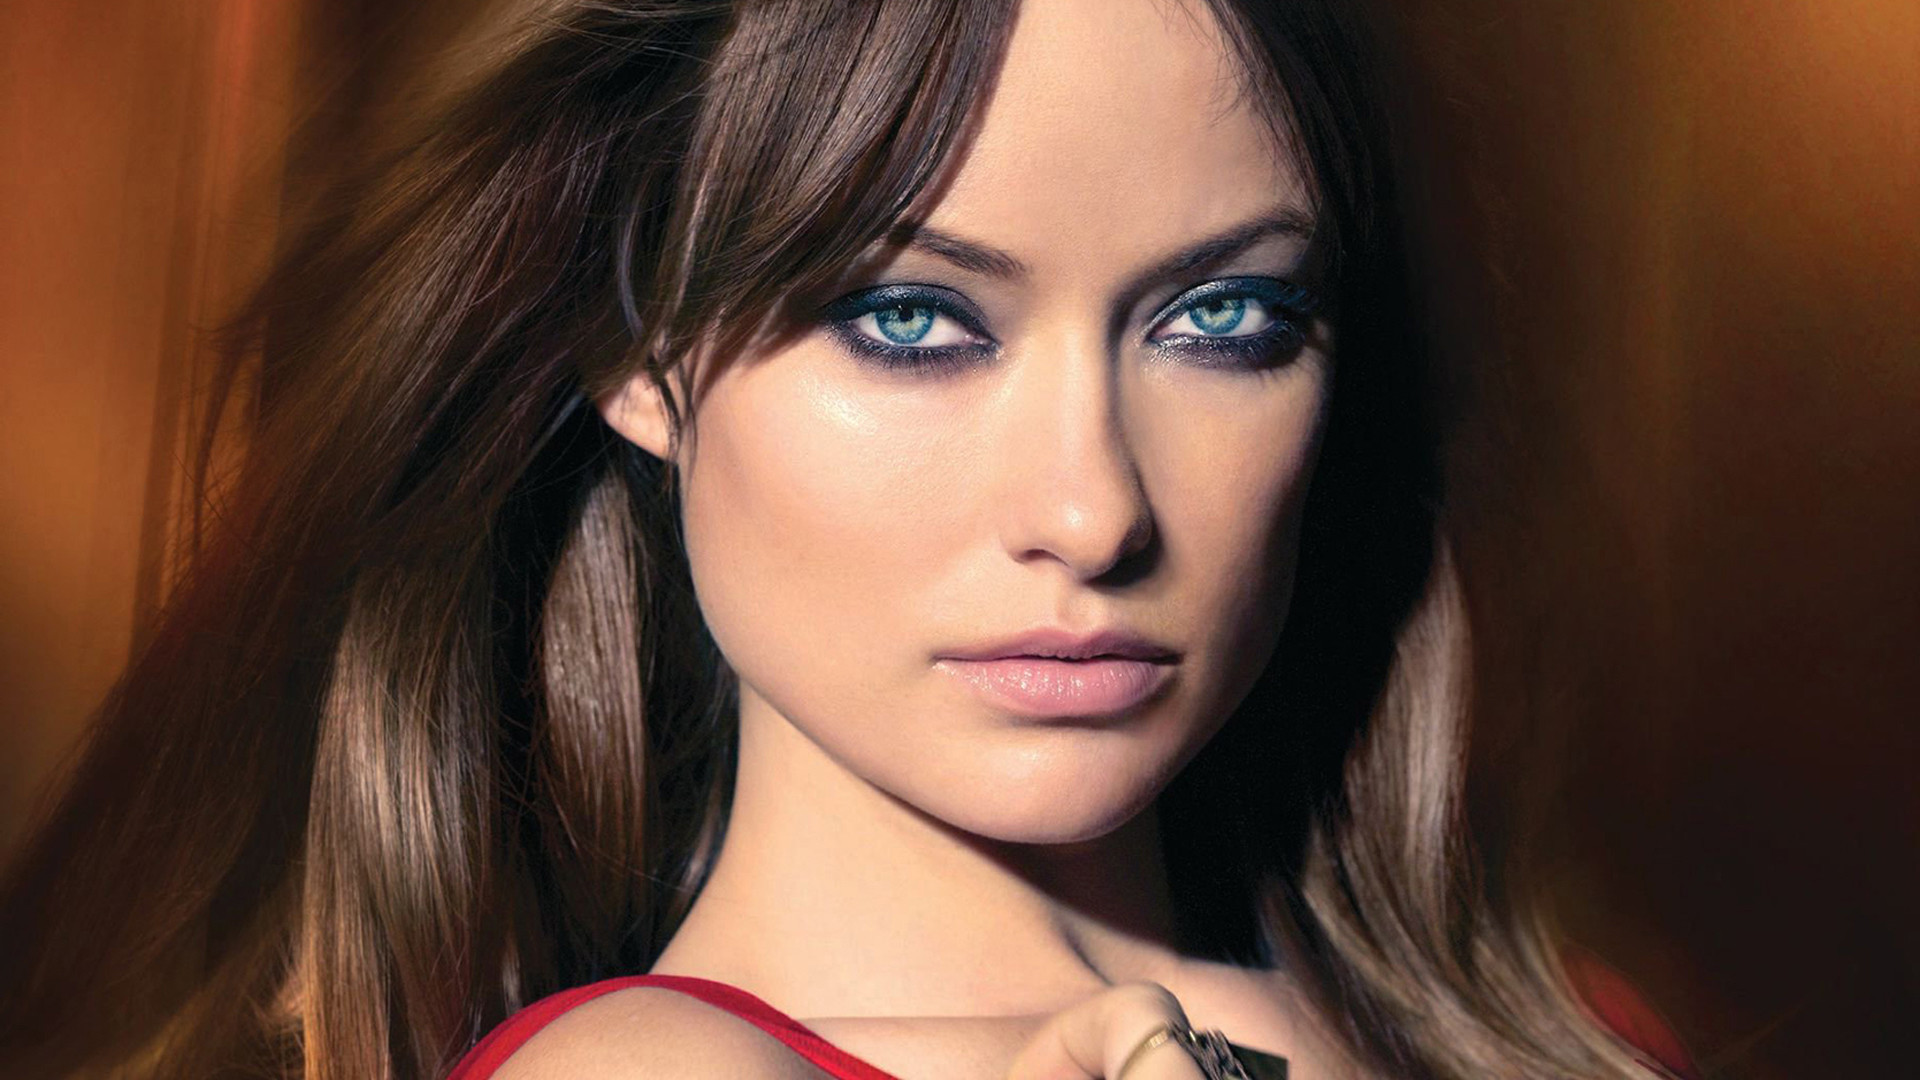 Beautiful Olivia Wilde Hot 2014 New HD Wallpapers and